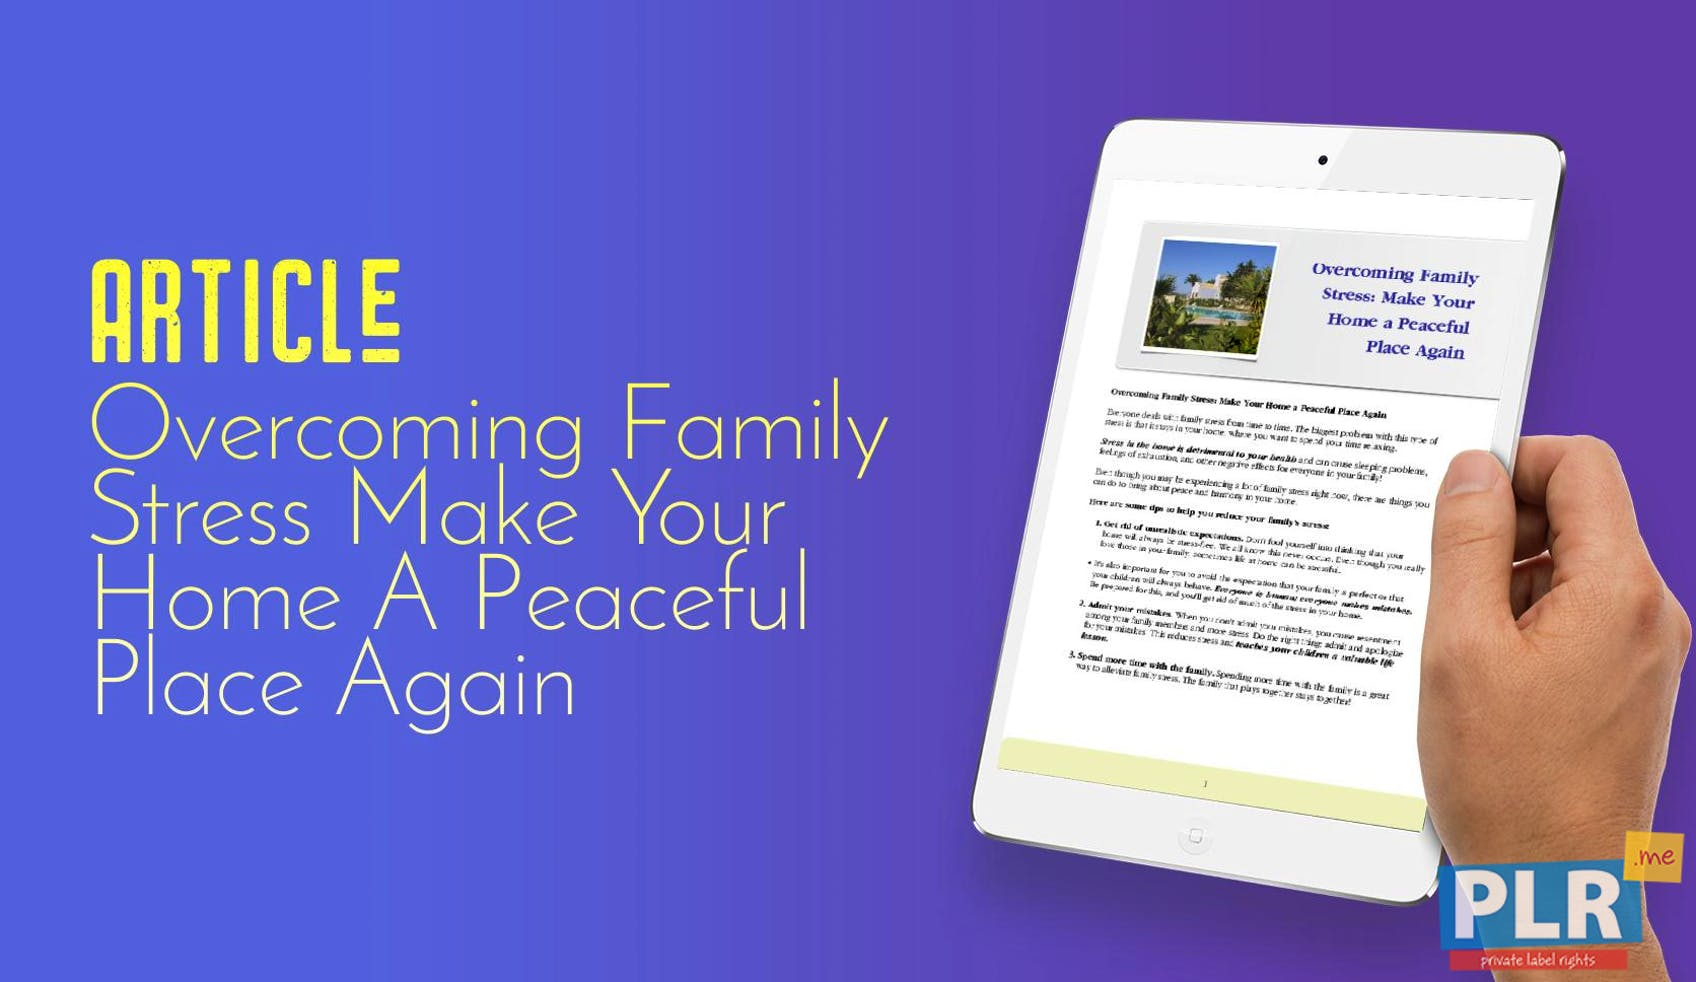 Plr Articles Blog Posts Overcoming Family Stress Make Your Home